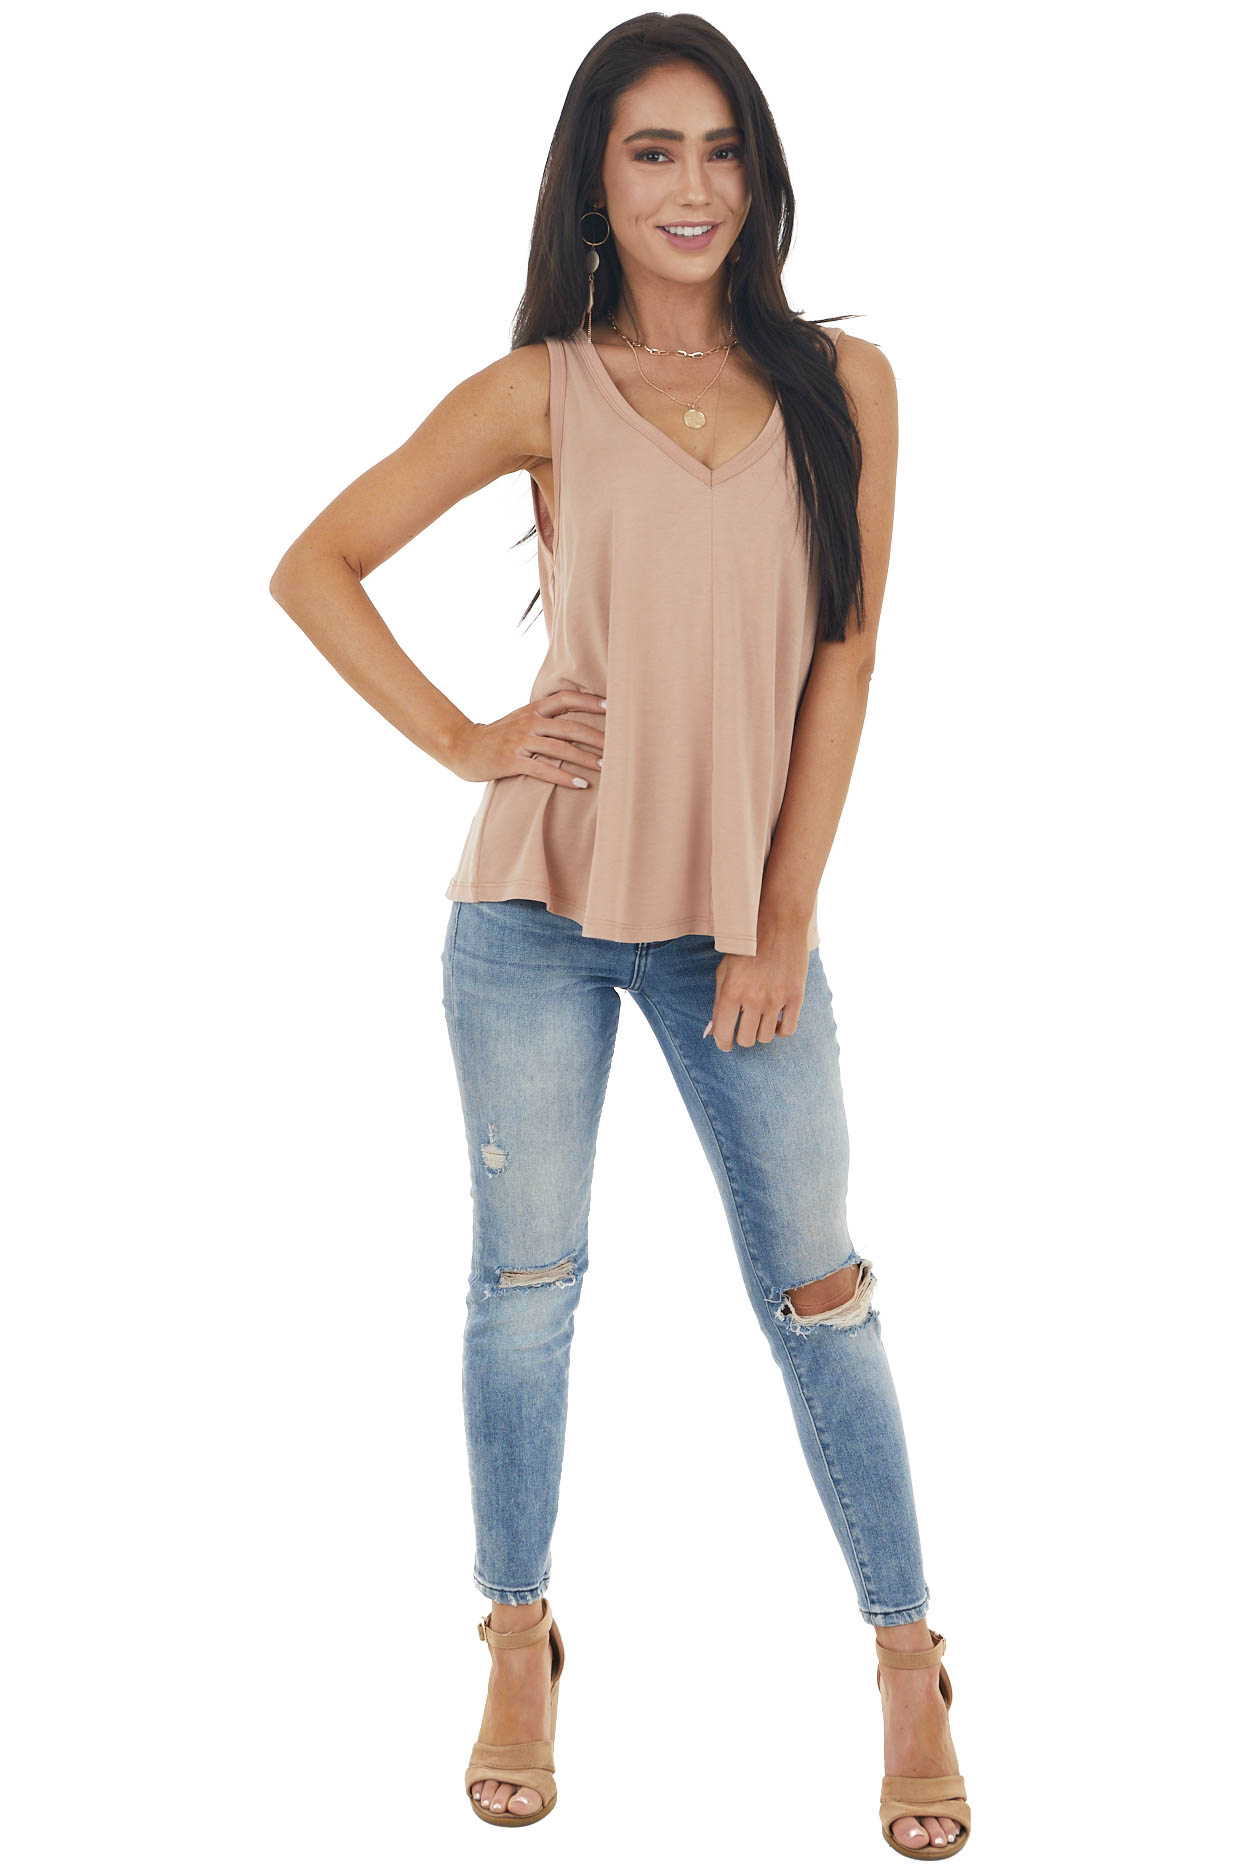 Apricot Solid Lightweight Knit Tank Top with V Neckline